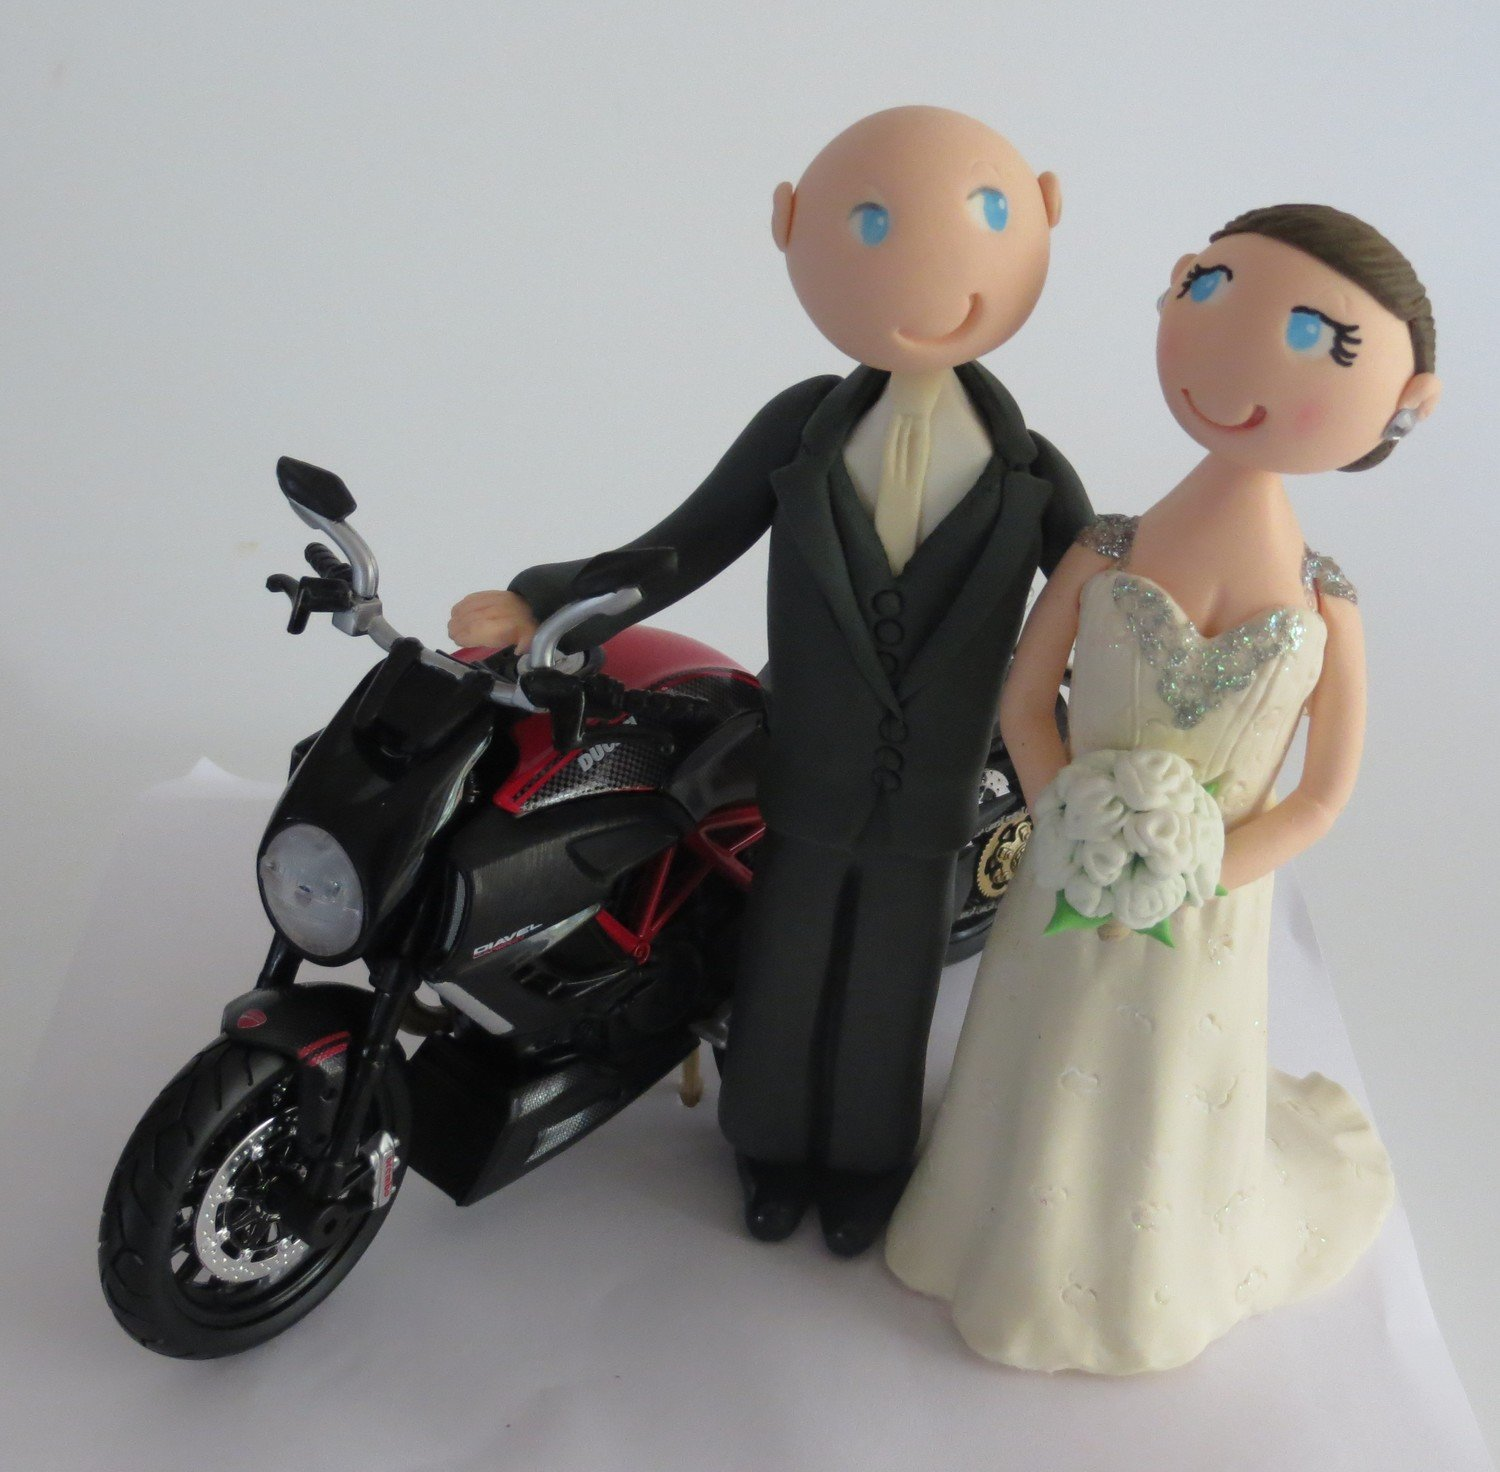 Bride & Groom with Motorbike on round base board